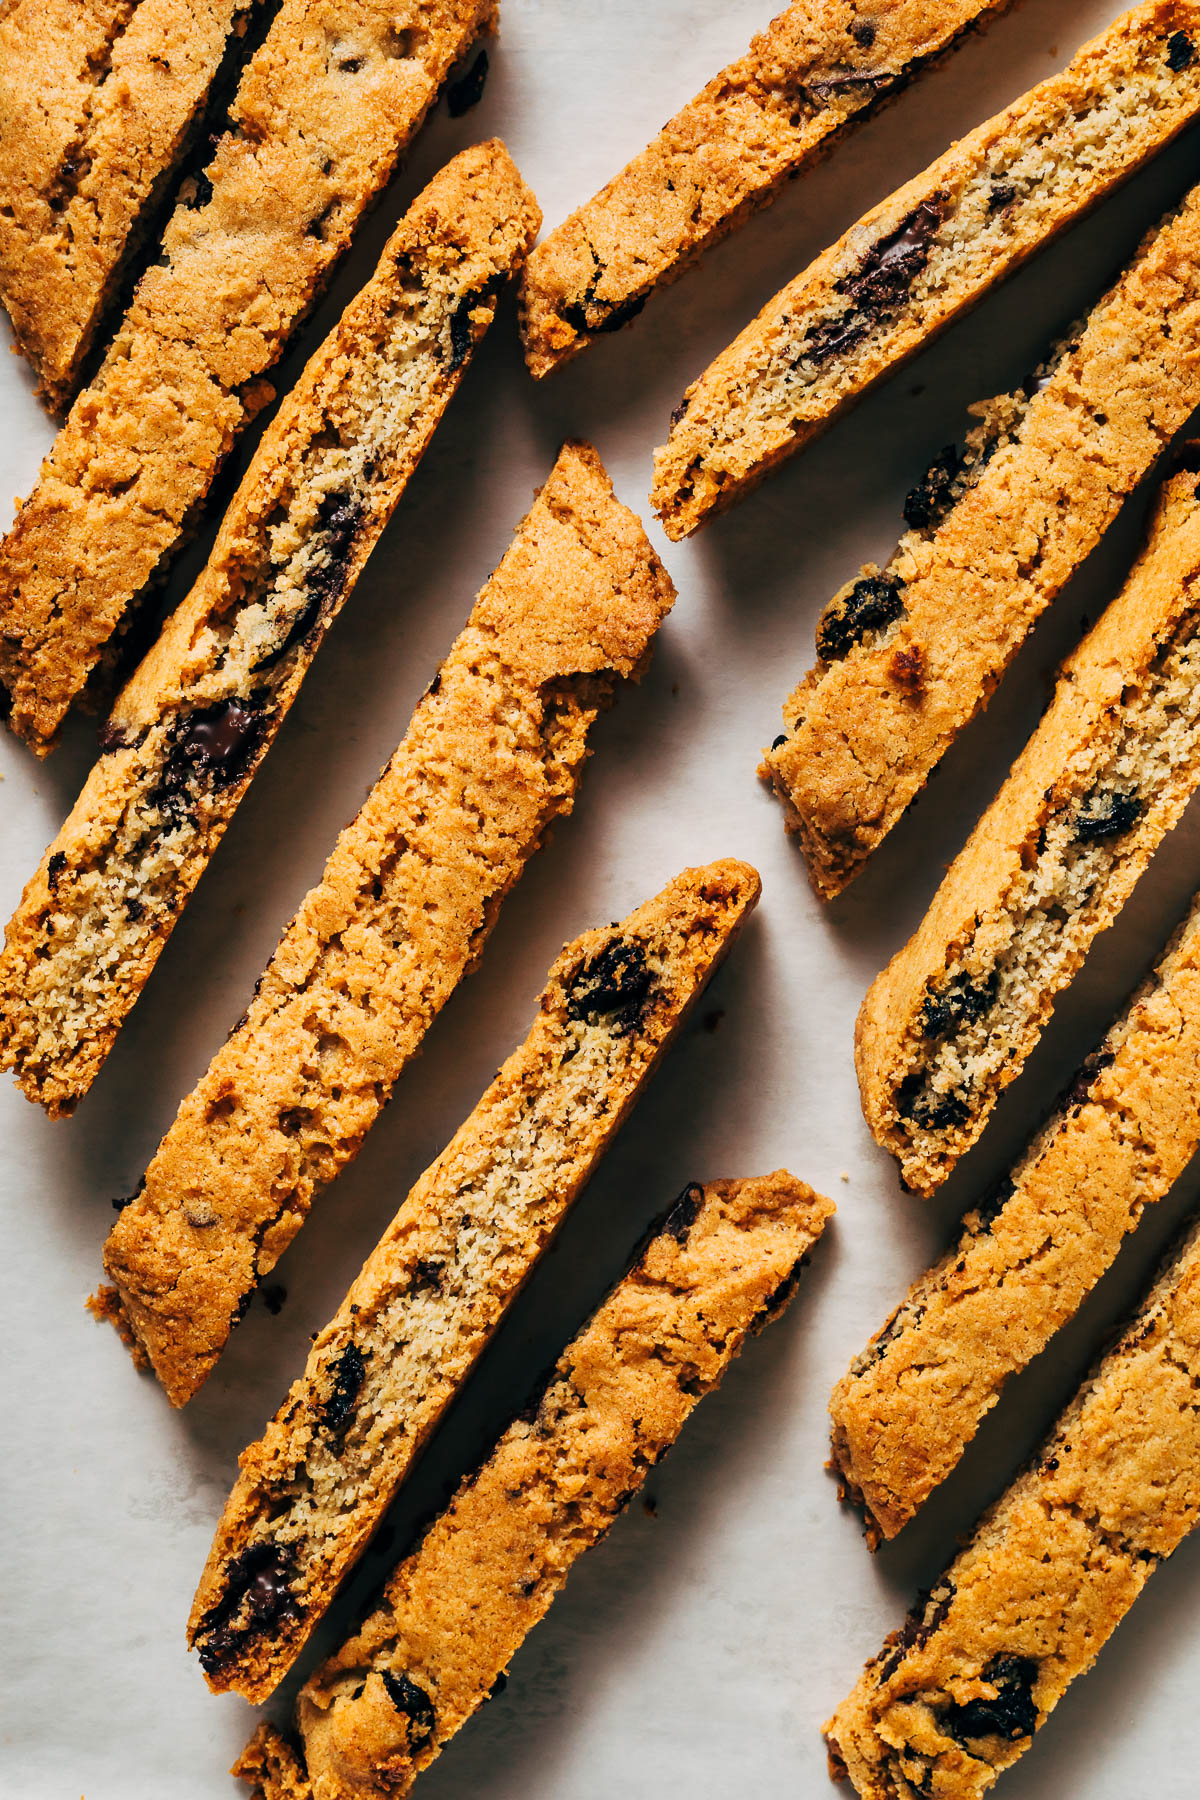 Chocolate chip biscotti on a baking sheet.